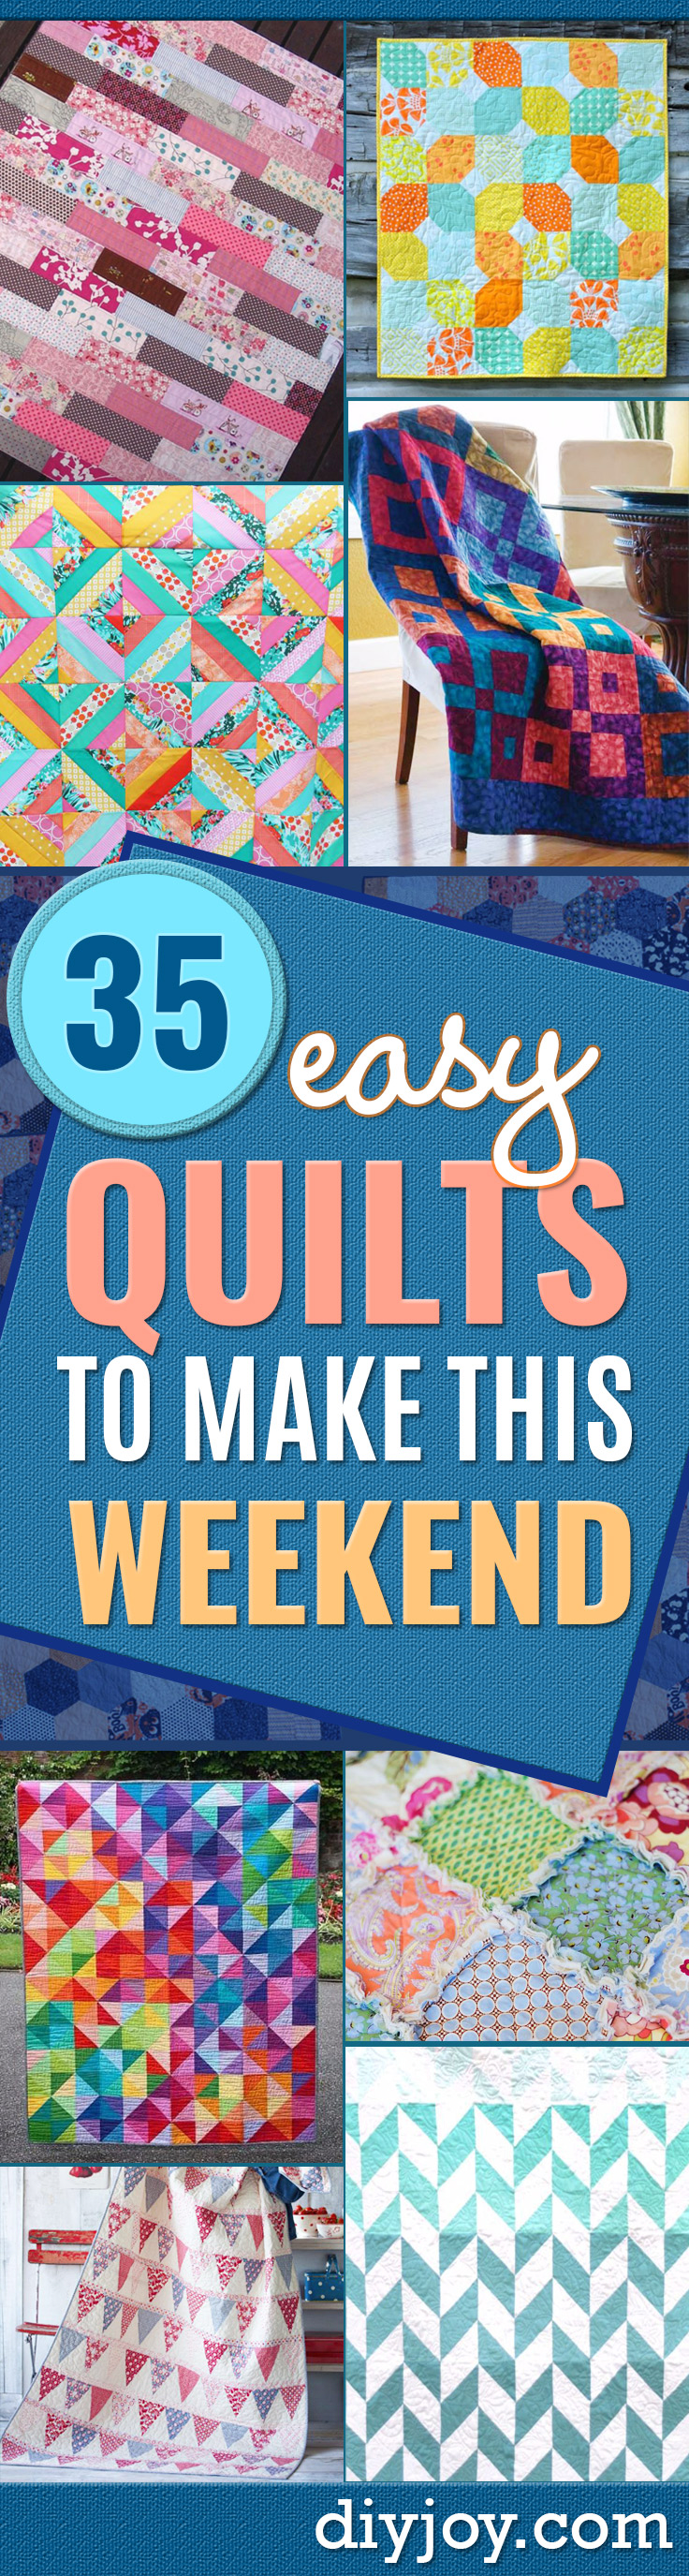 Easy Quilt Patterns Free - Best Quilts to Make This Weekend - Free Quilt Patterns and Quilting Tutorials - Quilting for Beginners and Sewing Ideas - DIY Baby Quilts, Printables, New and Easy Modern Quilts, Jelly Roll, Quilt Squares, Fat Quarters and Scrap Ideas